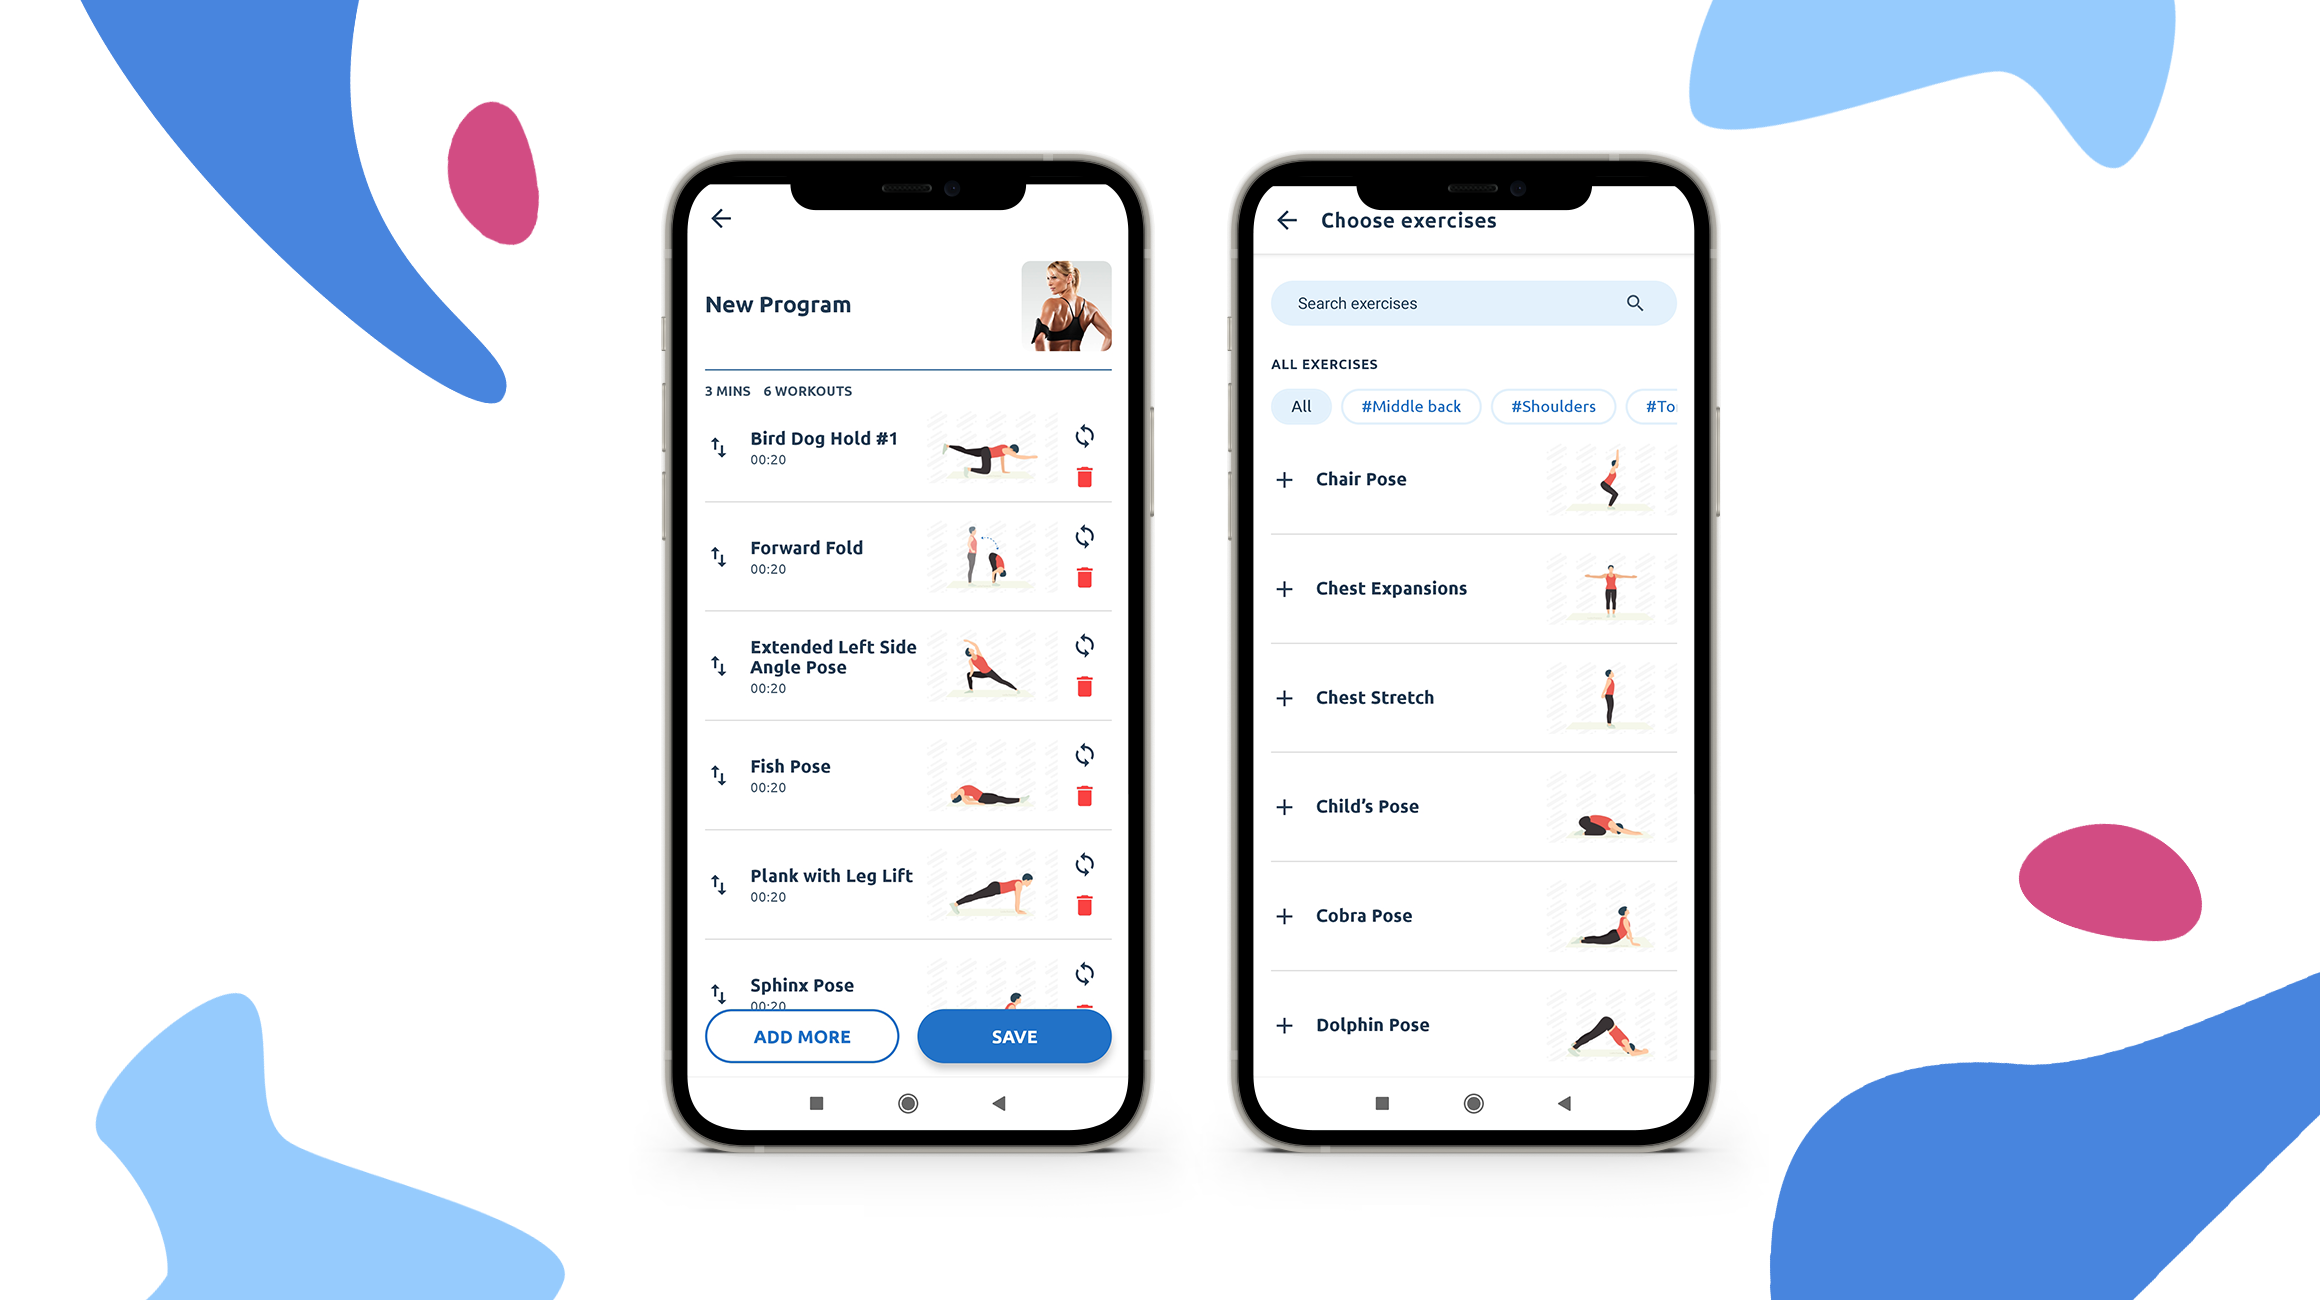 custom workouts in fitness apps